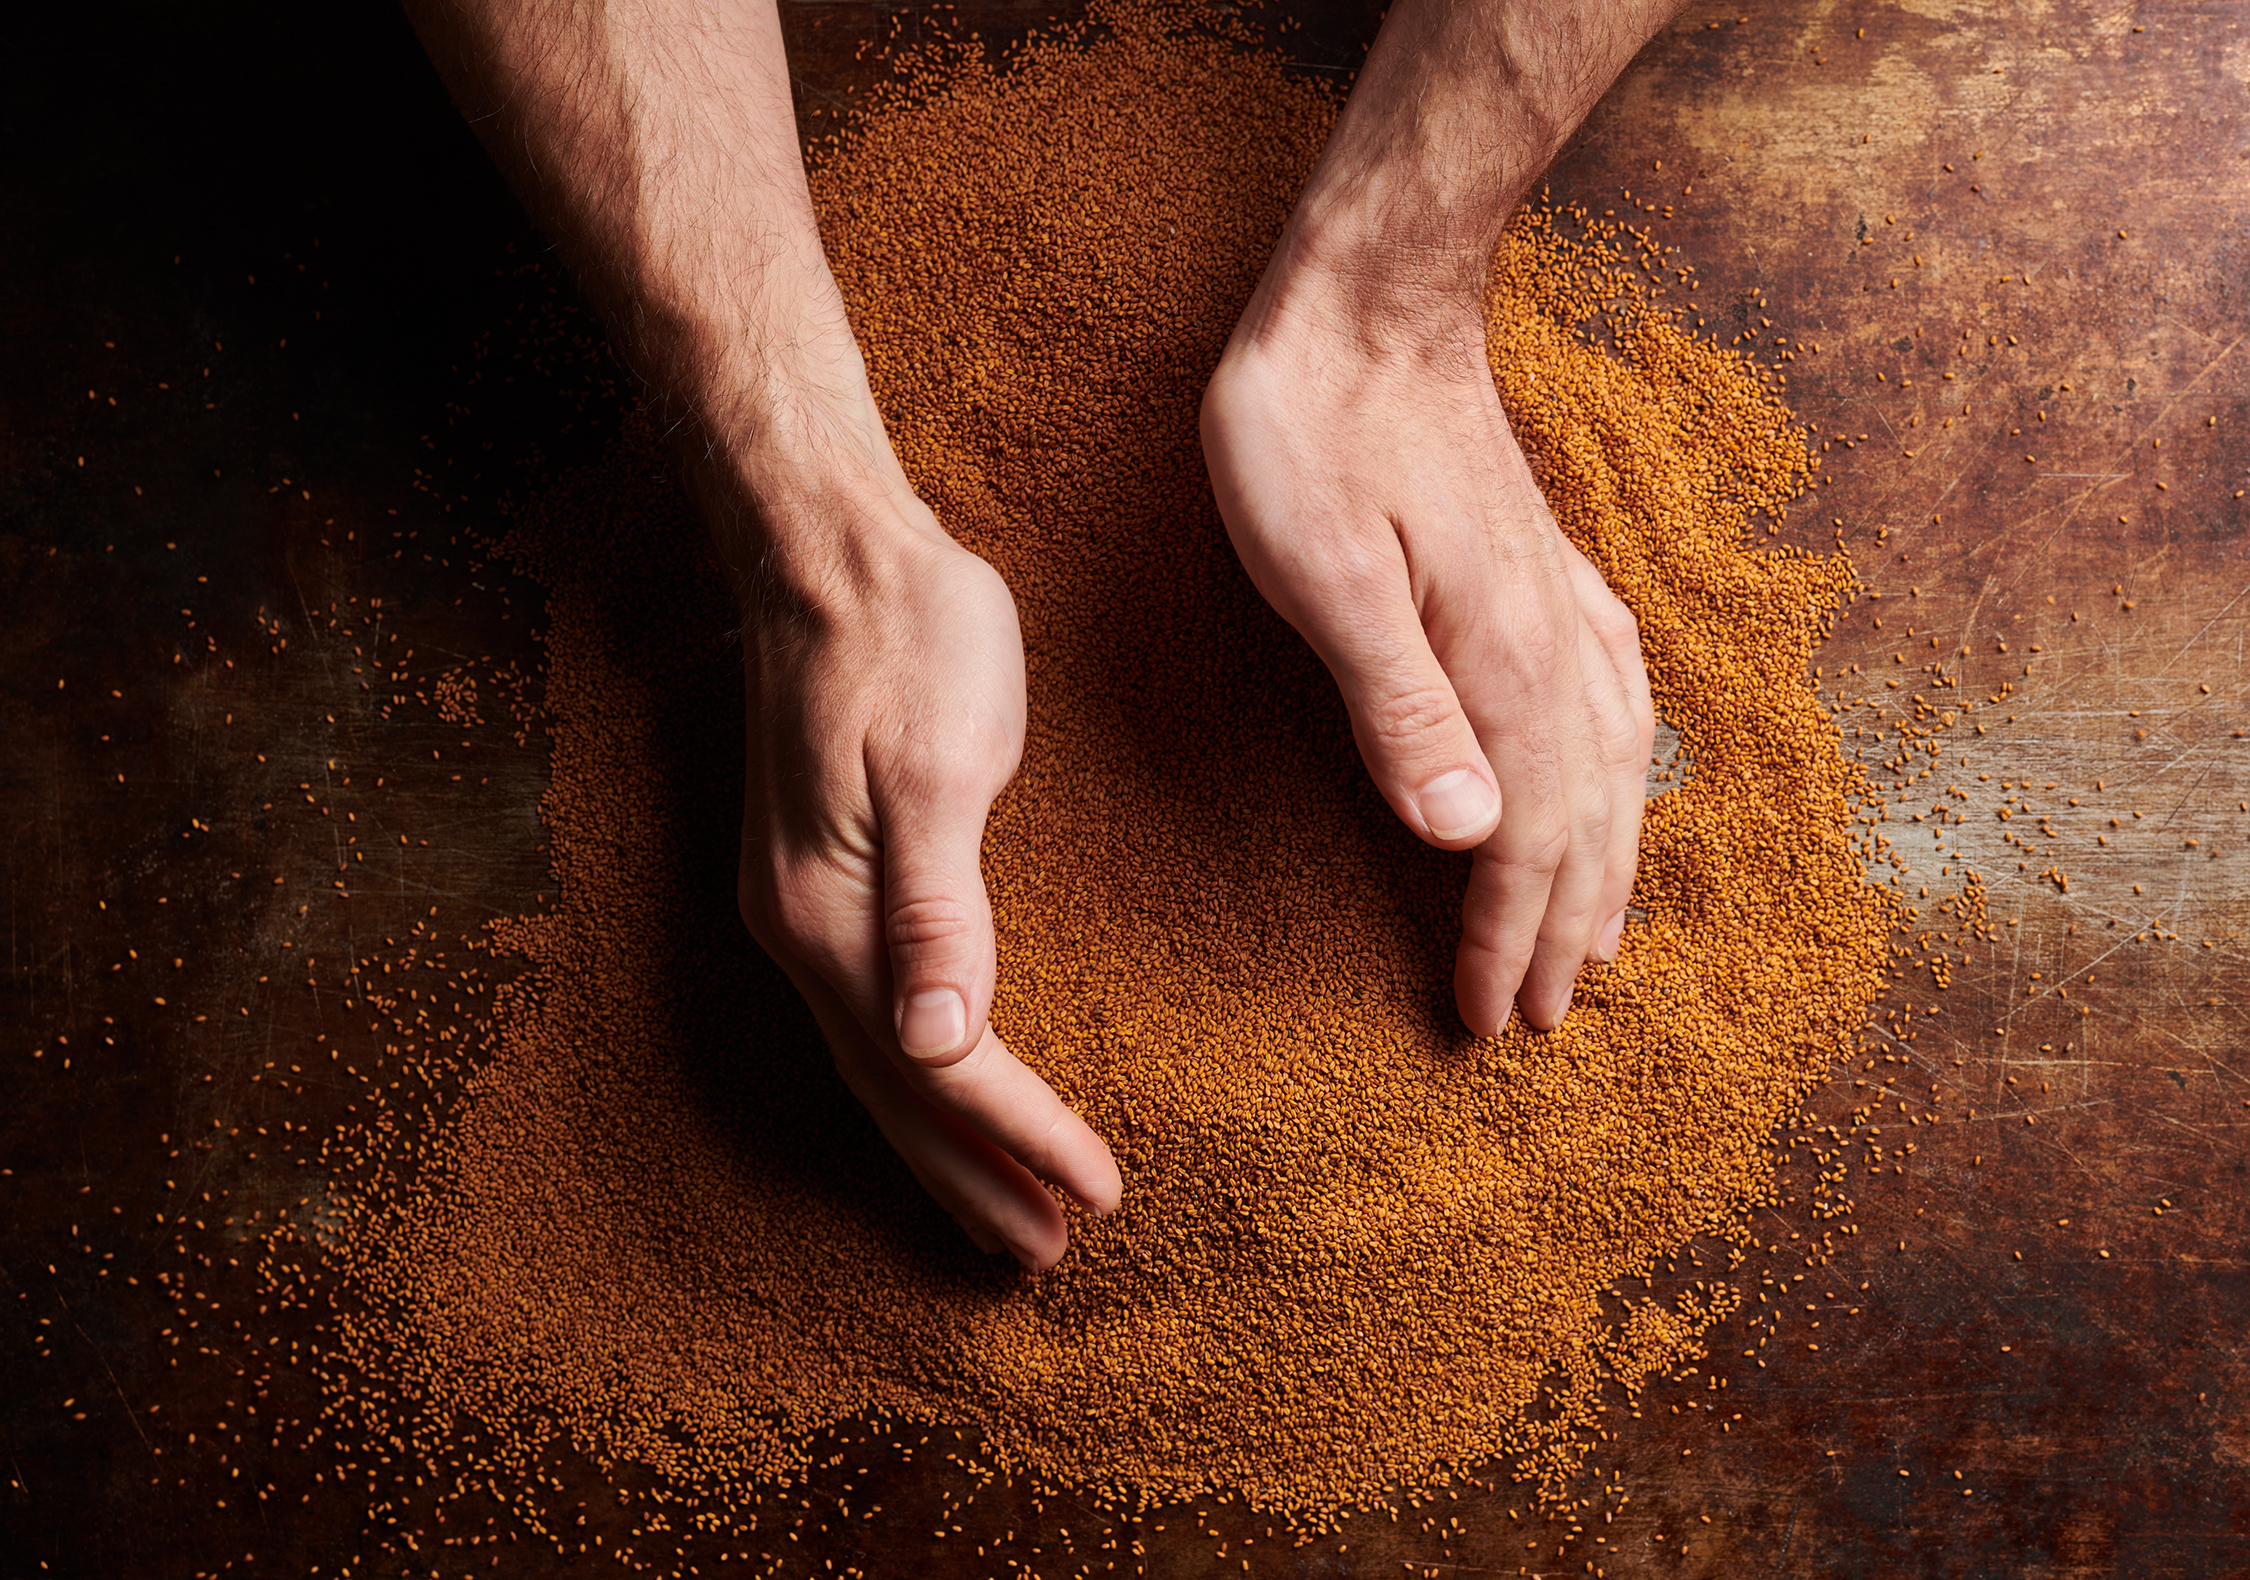 A man scooping grain with his hands